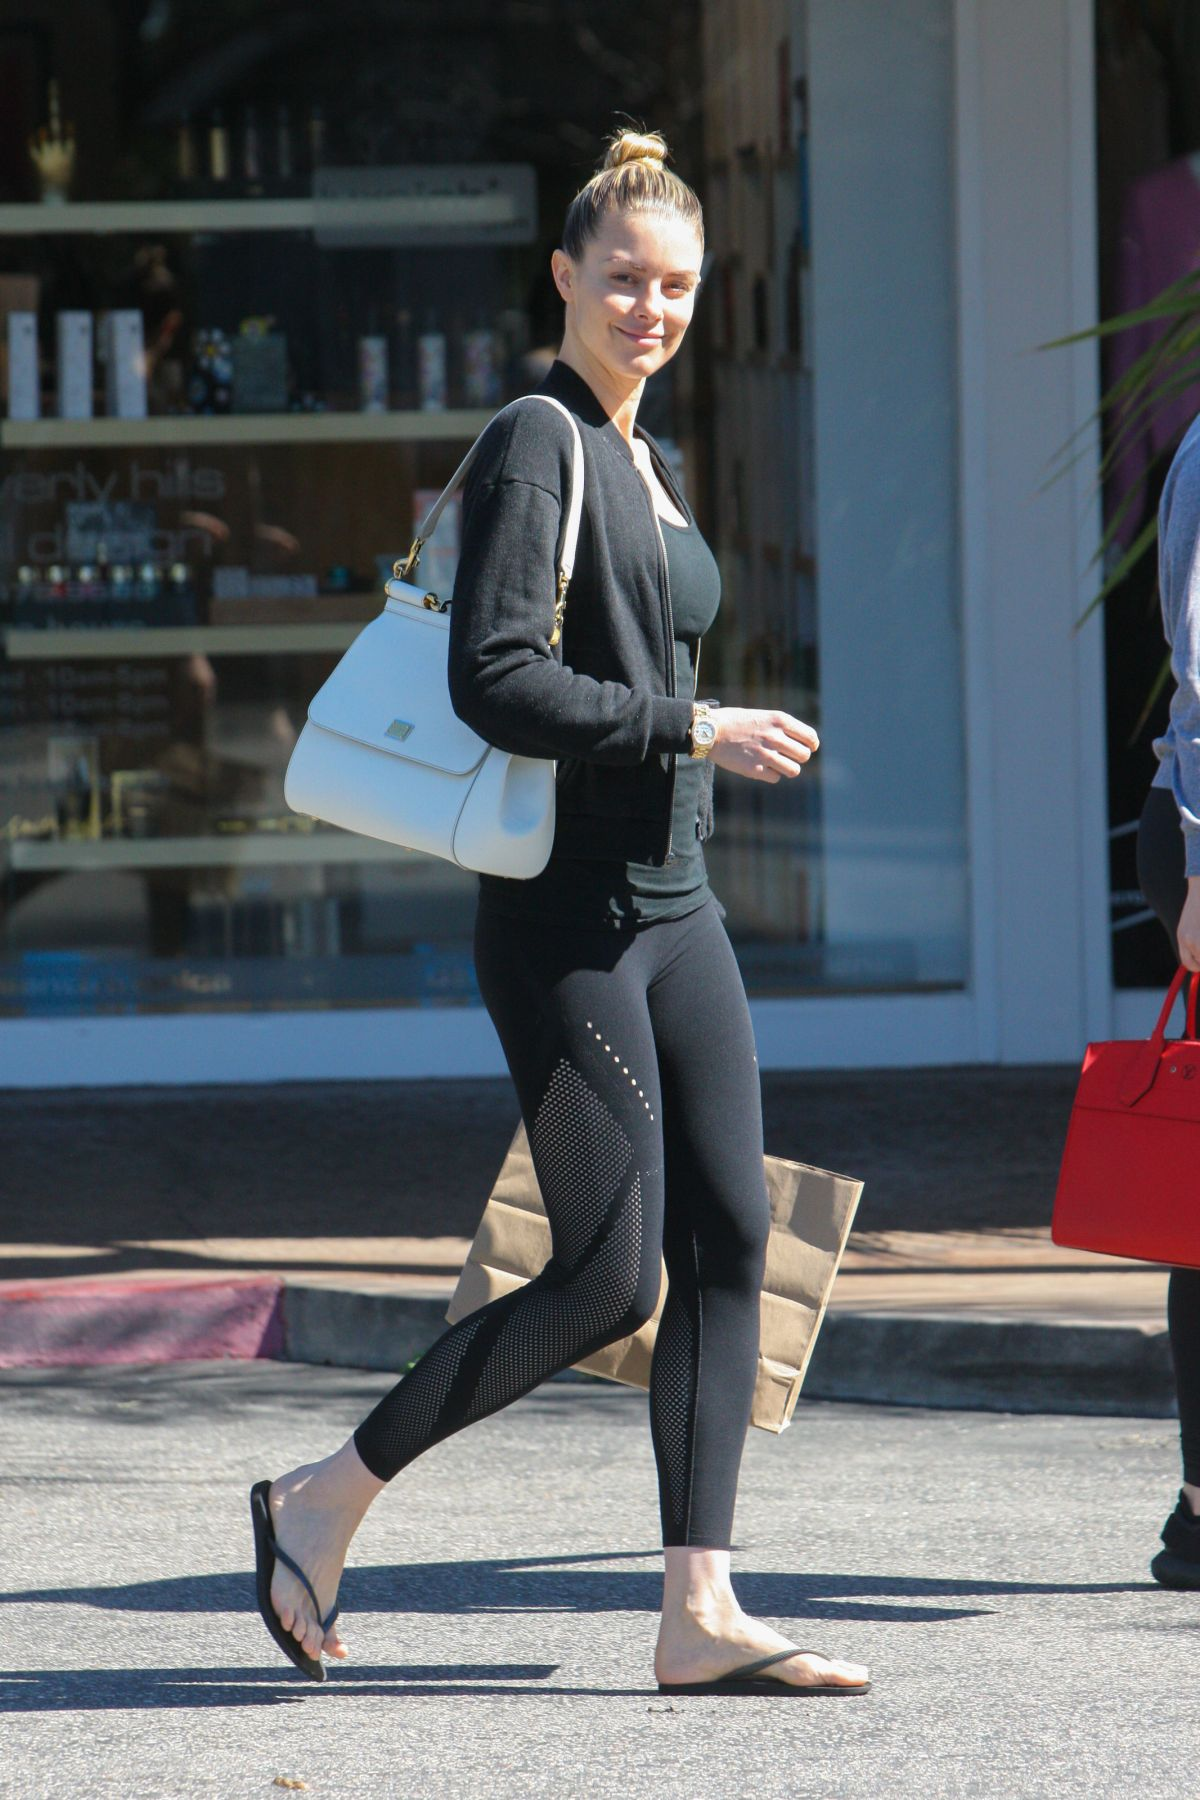 Paige butcher in spandex beverly hills nudes (73 image)